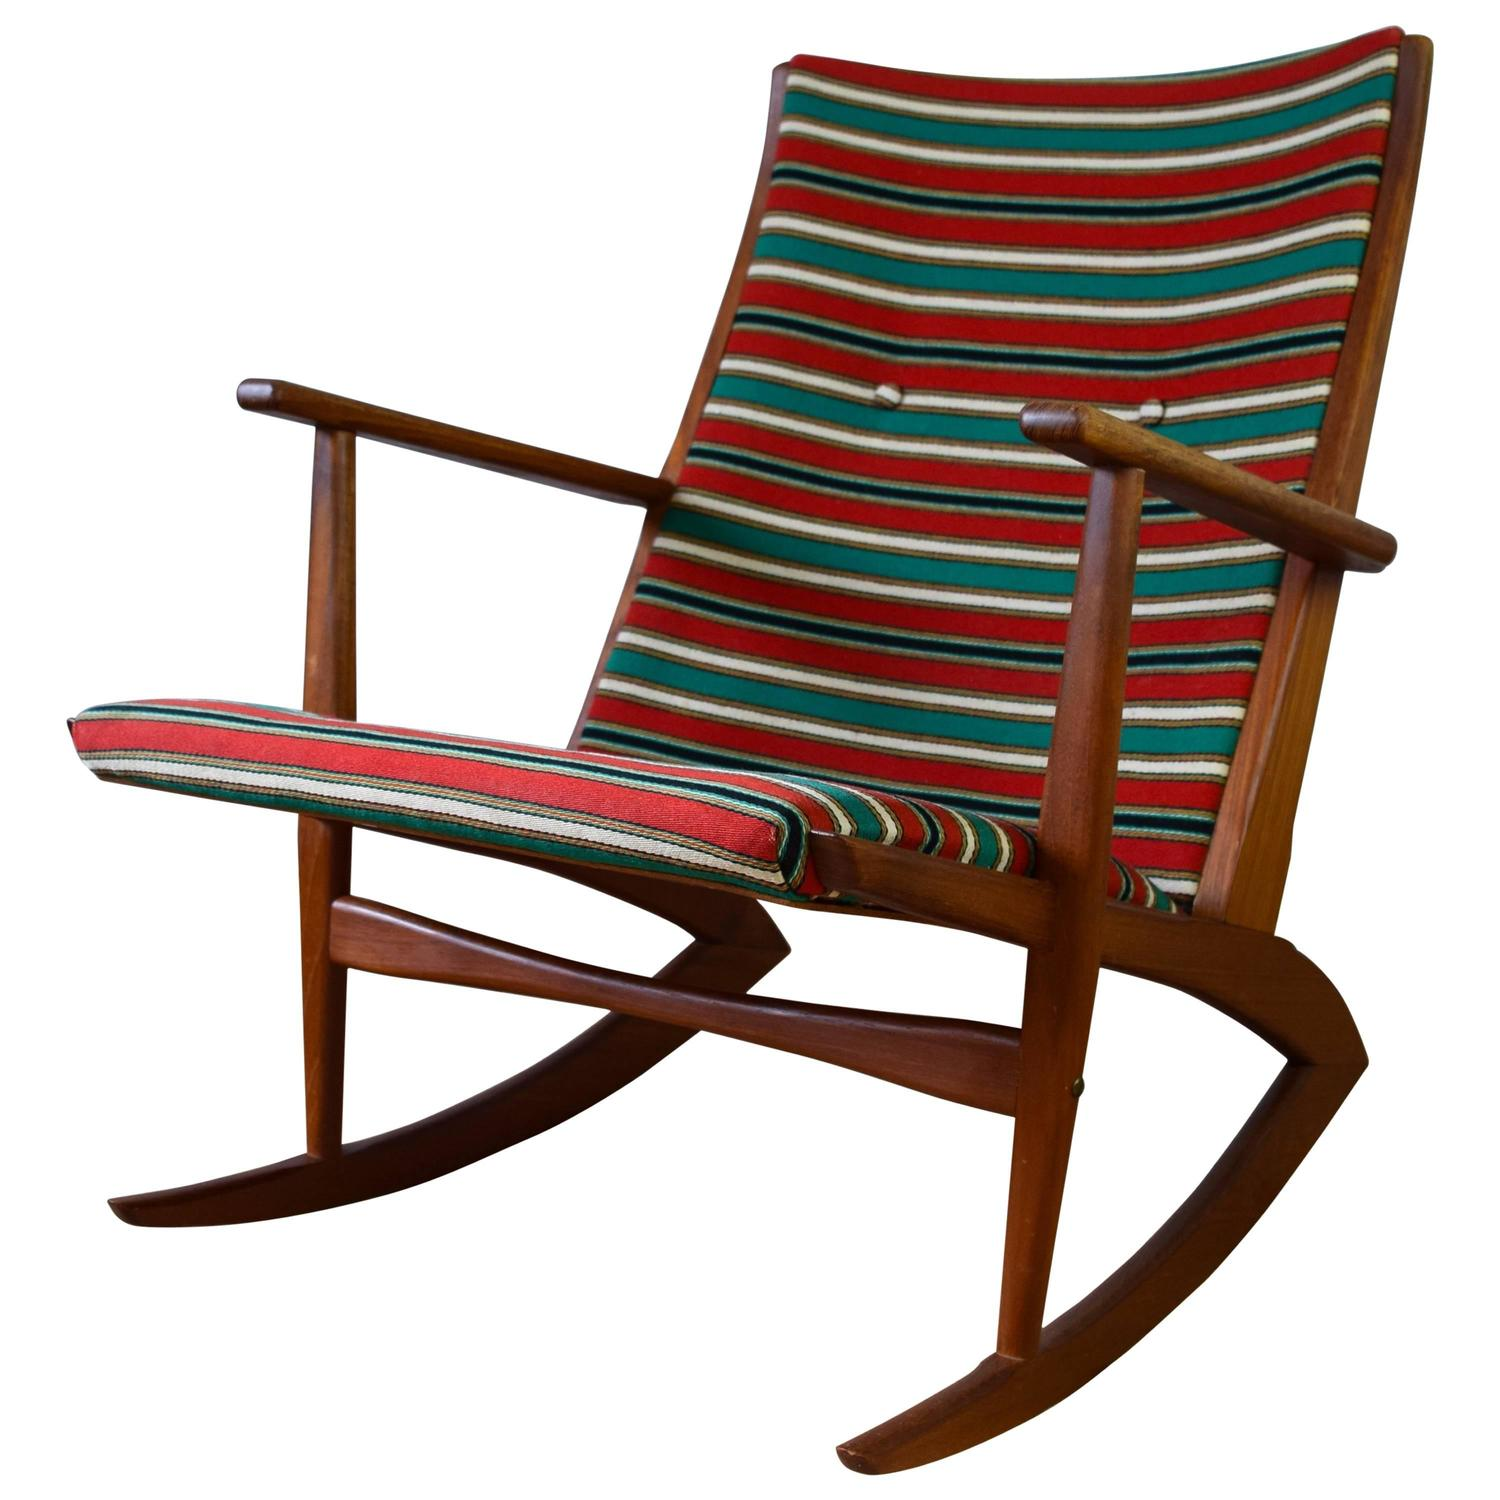 Folding Rocking Chair by Takeshi Nii Japan 1950s For Sale at 1stdibs